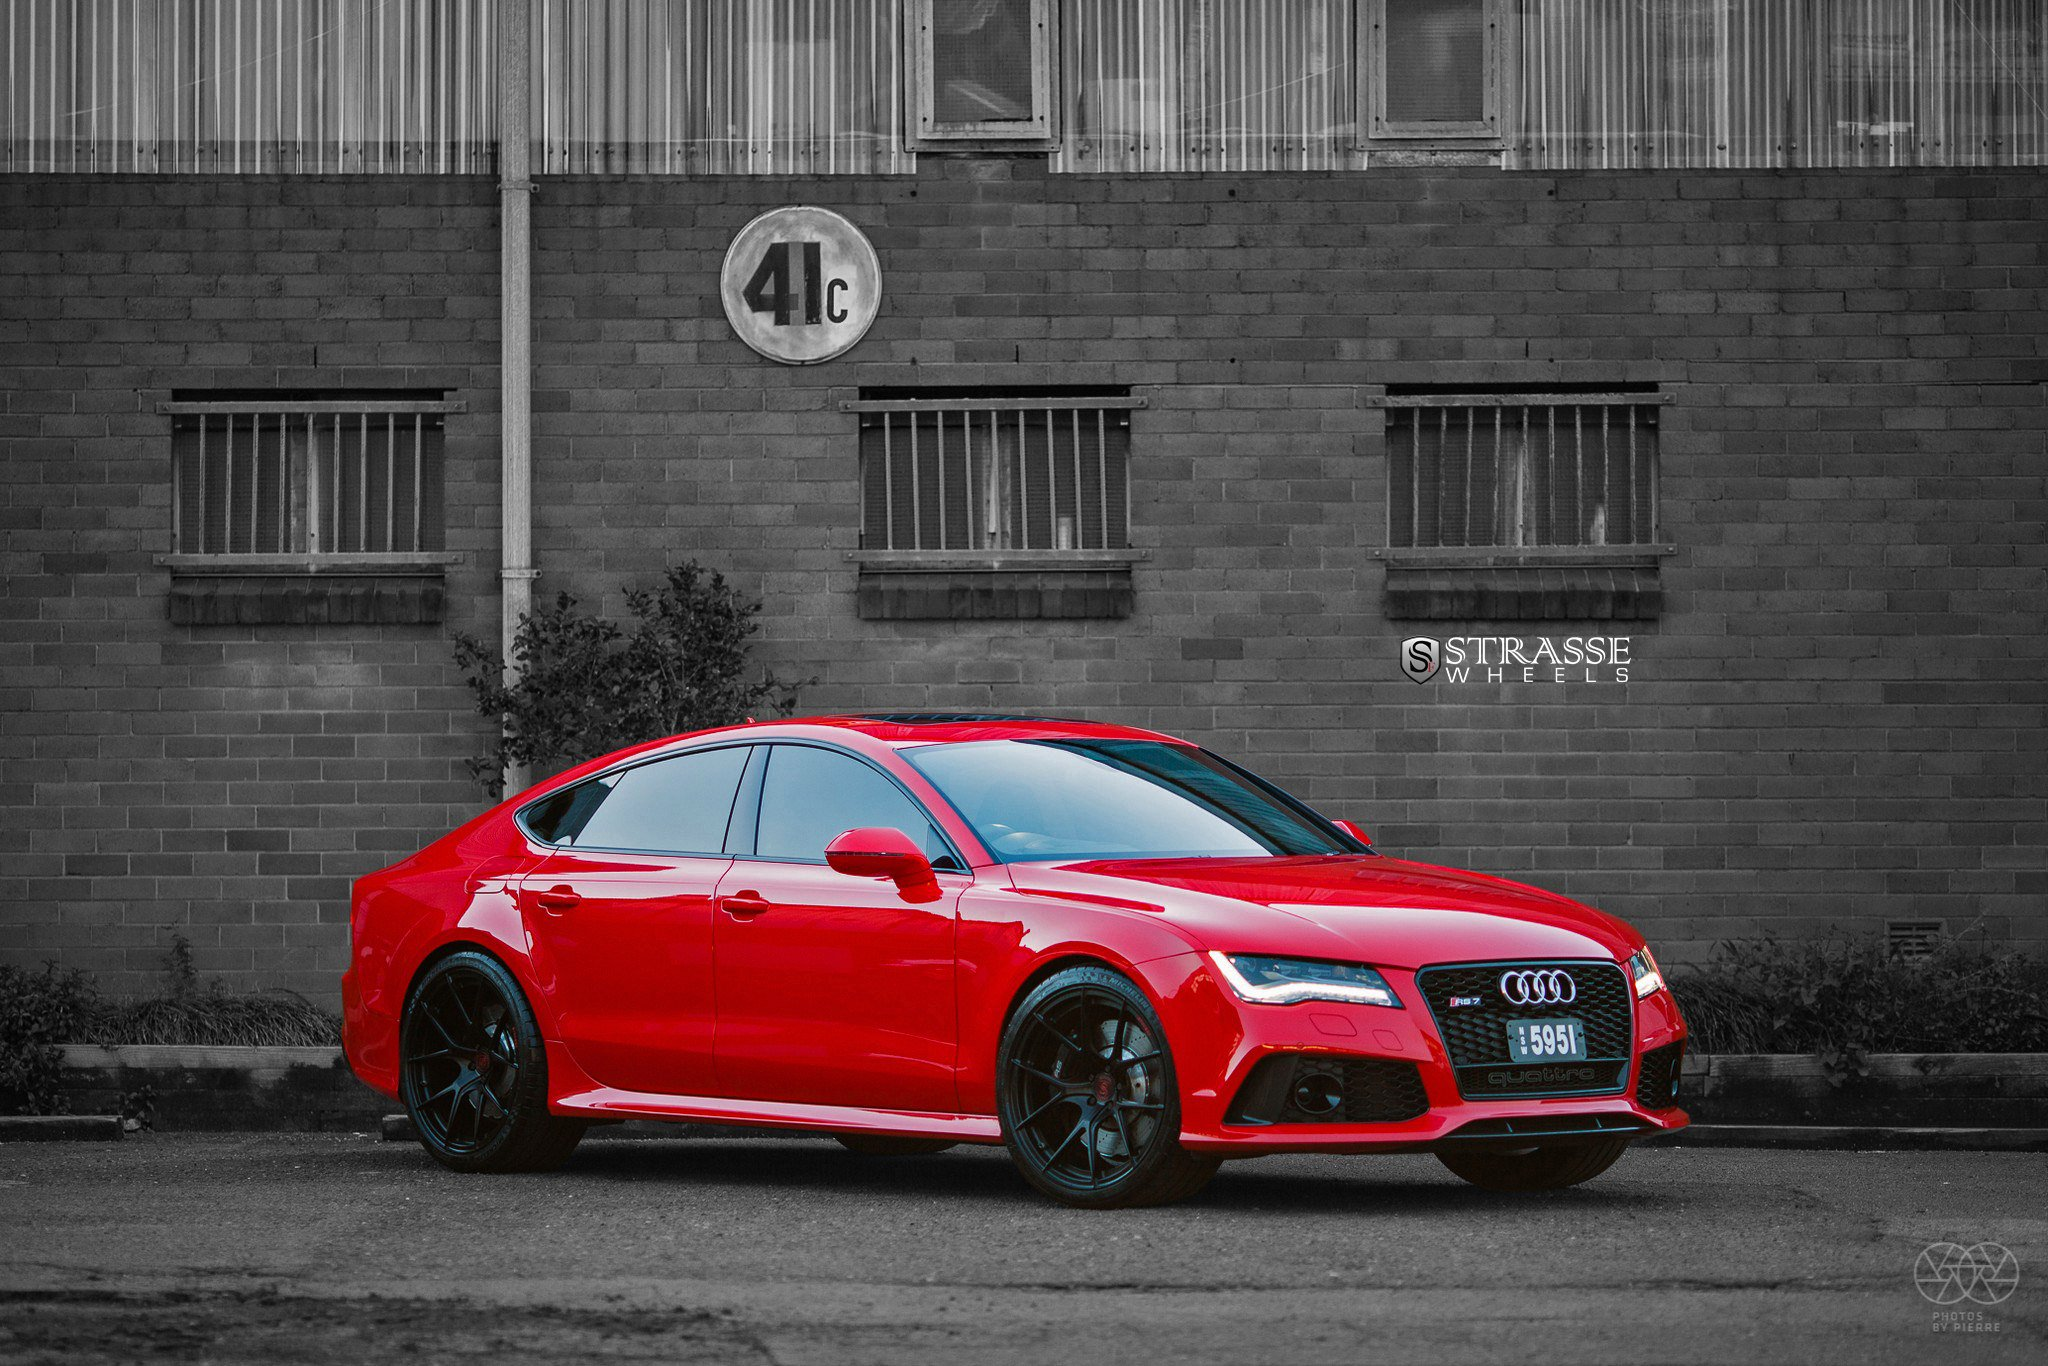 Strasse Wheels Gallery Audi Rs7 Red Cars Coupe Wallpaper